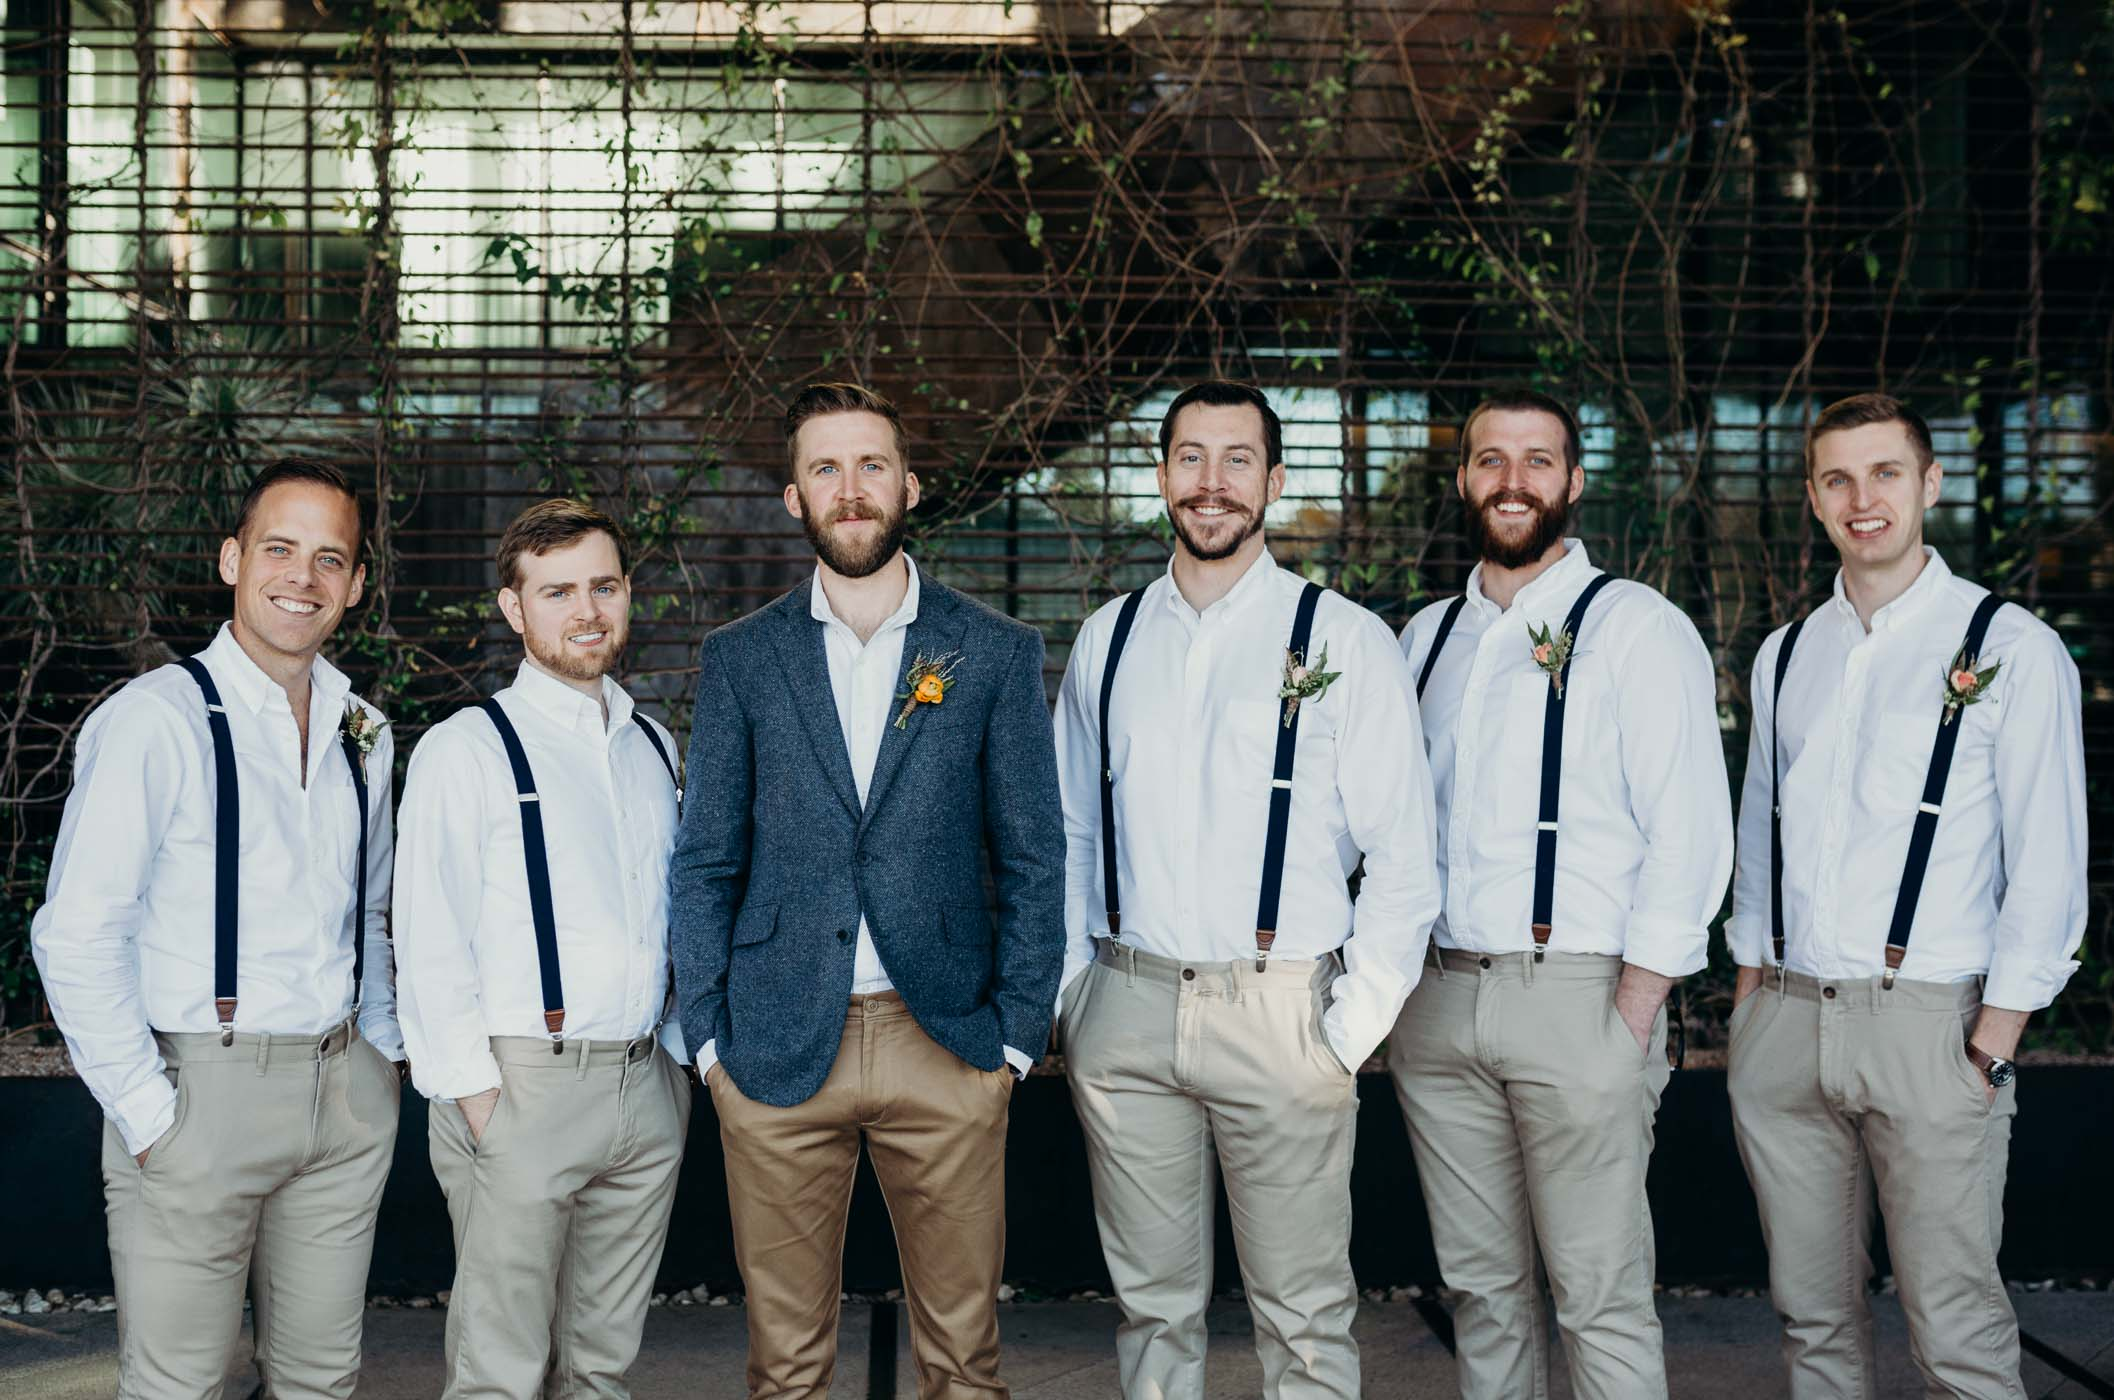 The groom and groomsmen. They are all wearing khakis and the groomsmen have white shirts and suspenders while the groom is wearing a blue jacket.